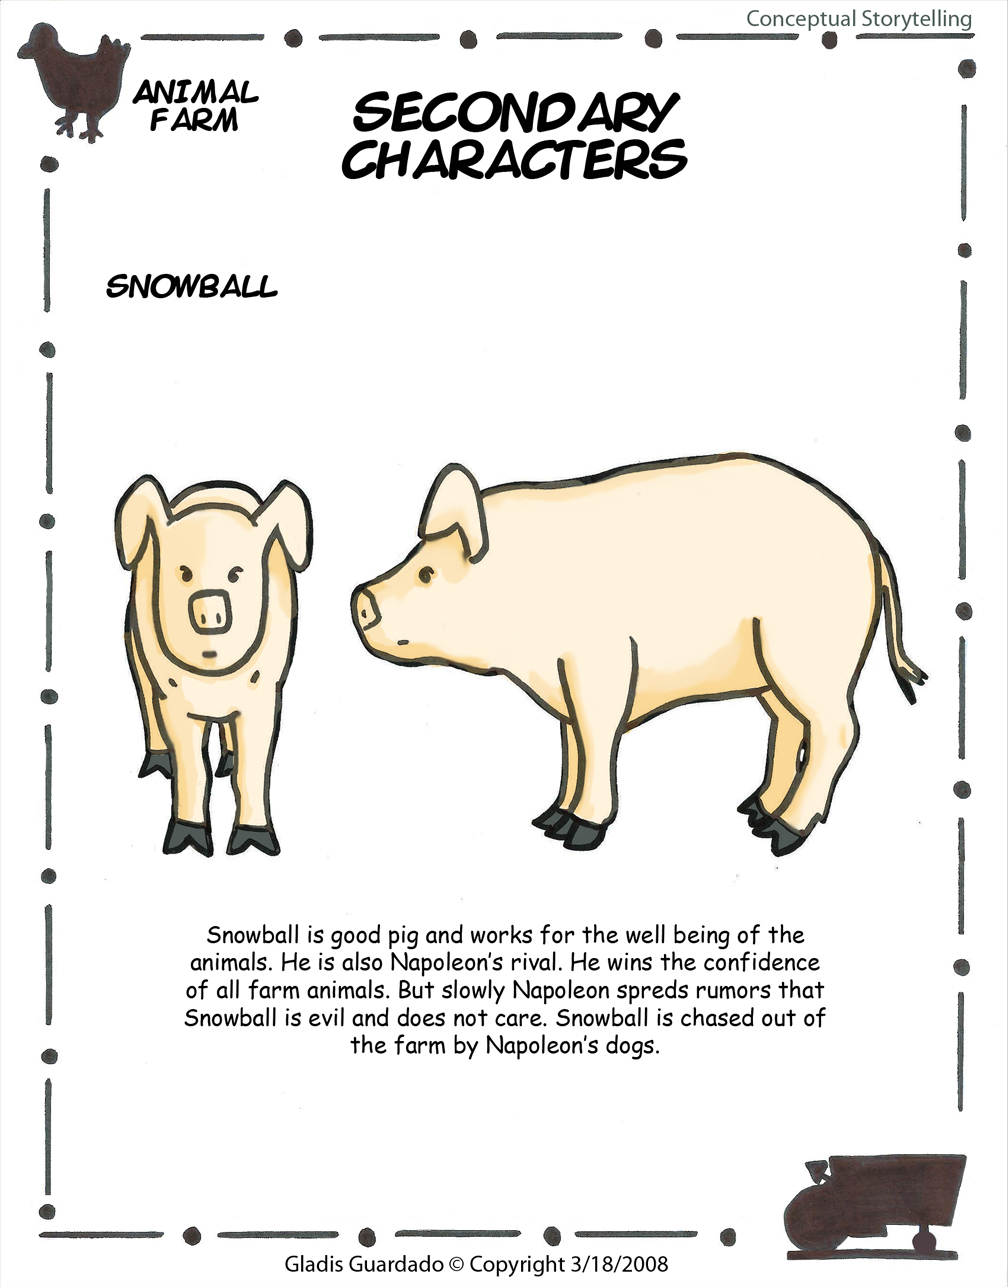 character analysis of napoleon from animal farm This study guide consists of approximately 15 pages of chapter summaries, quotes, character analysis, themes, and more - everything you need to sharpen your knowledge of animal farm napoleon, one of the three pigs who originally helped spearhead the rebellion on manor farm, becomes the supreme.